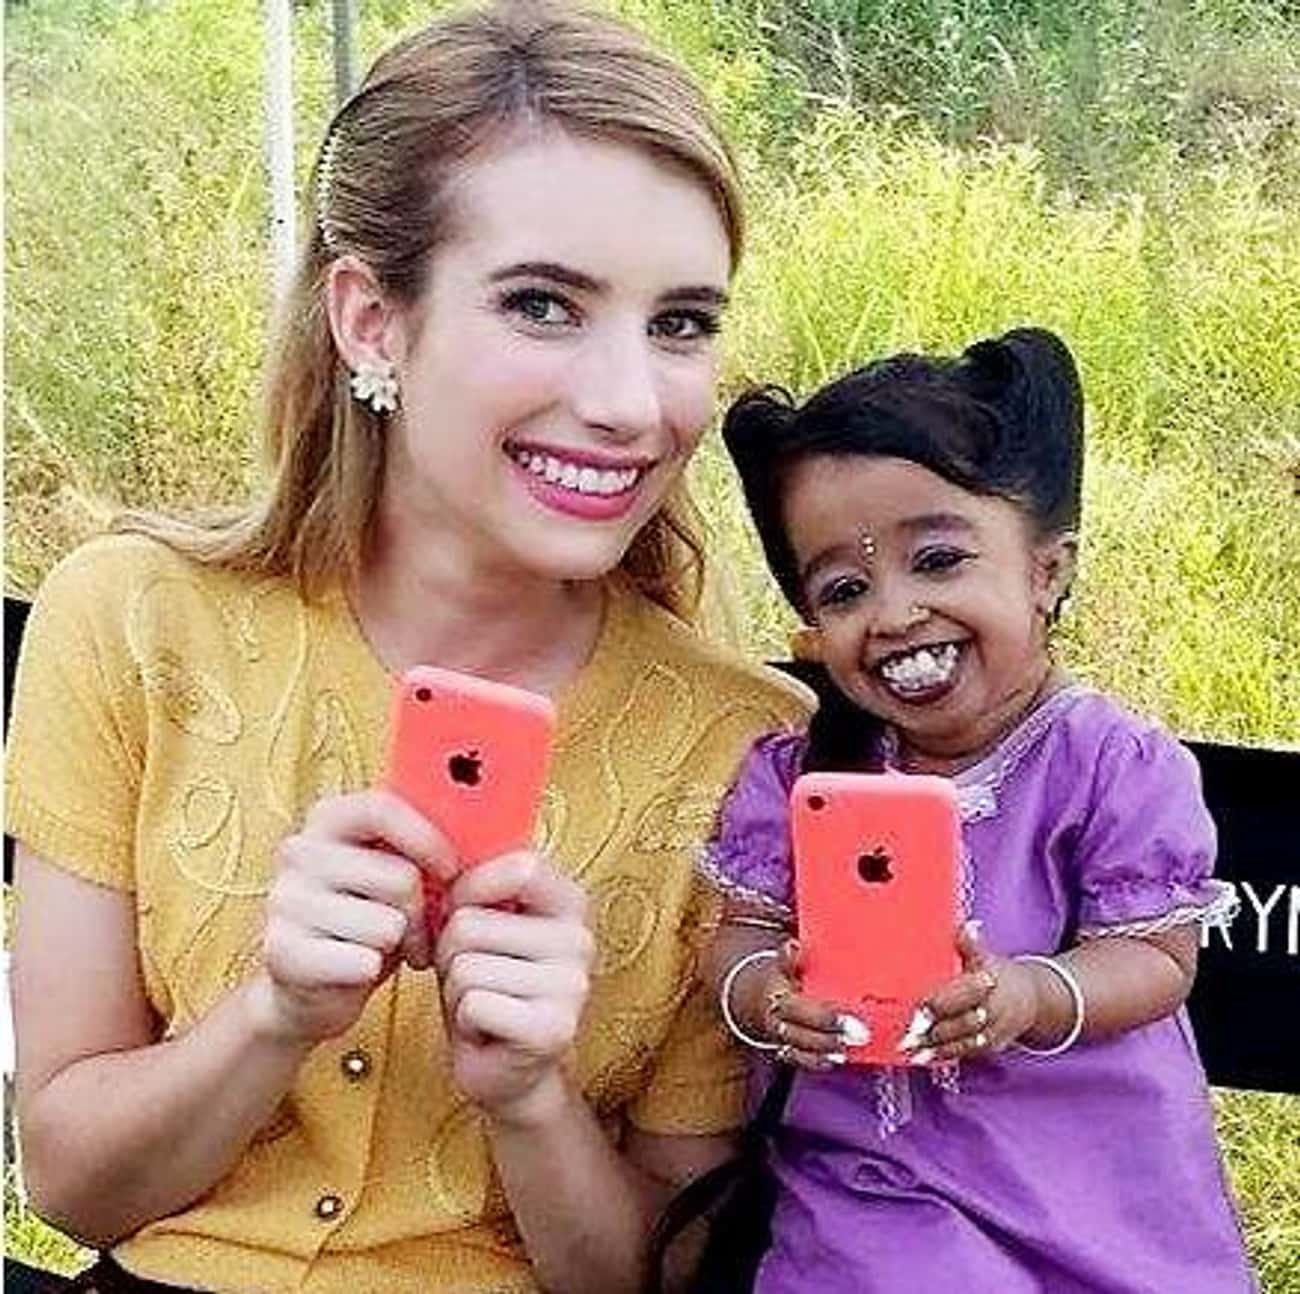 Selfies With Friends is listed (or ranked) 2 on the list Behind The Scenes Photos From American Horror Story You've Probably Never Seen Before